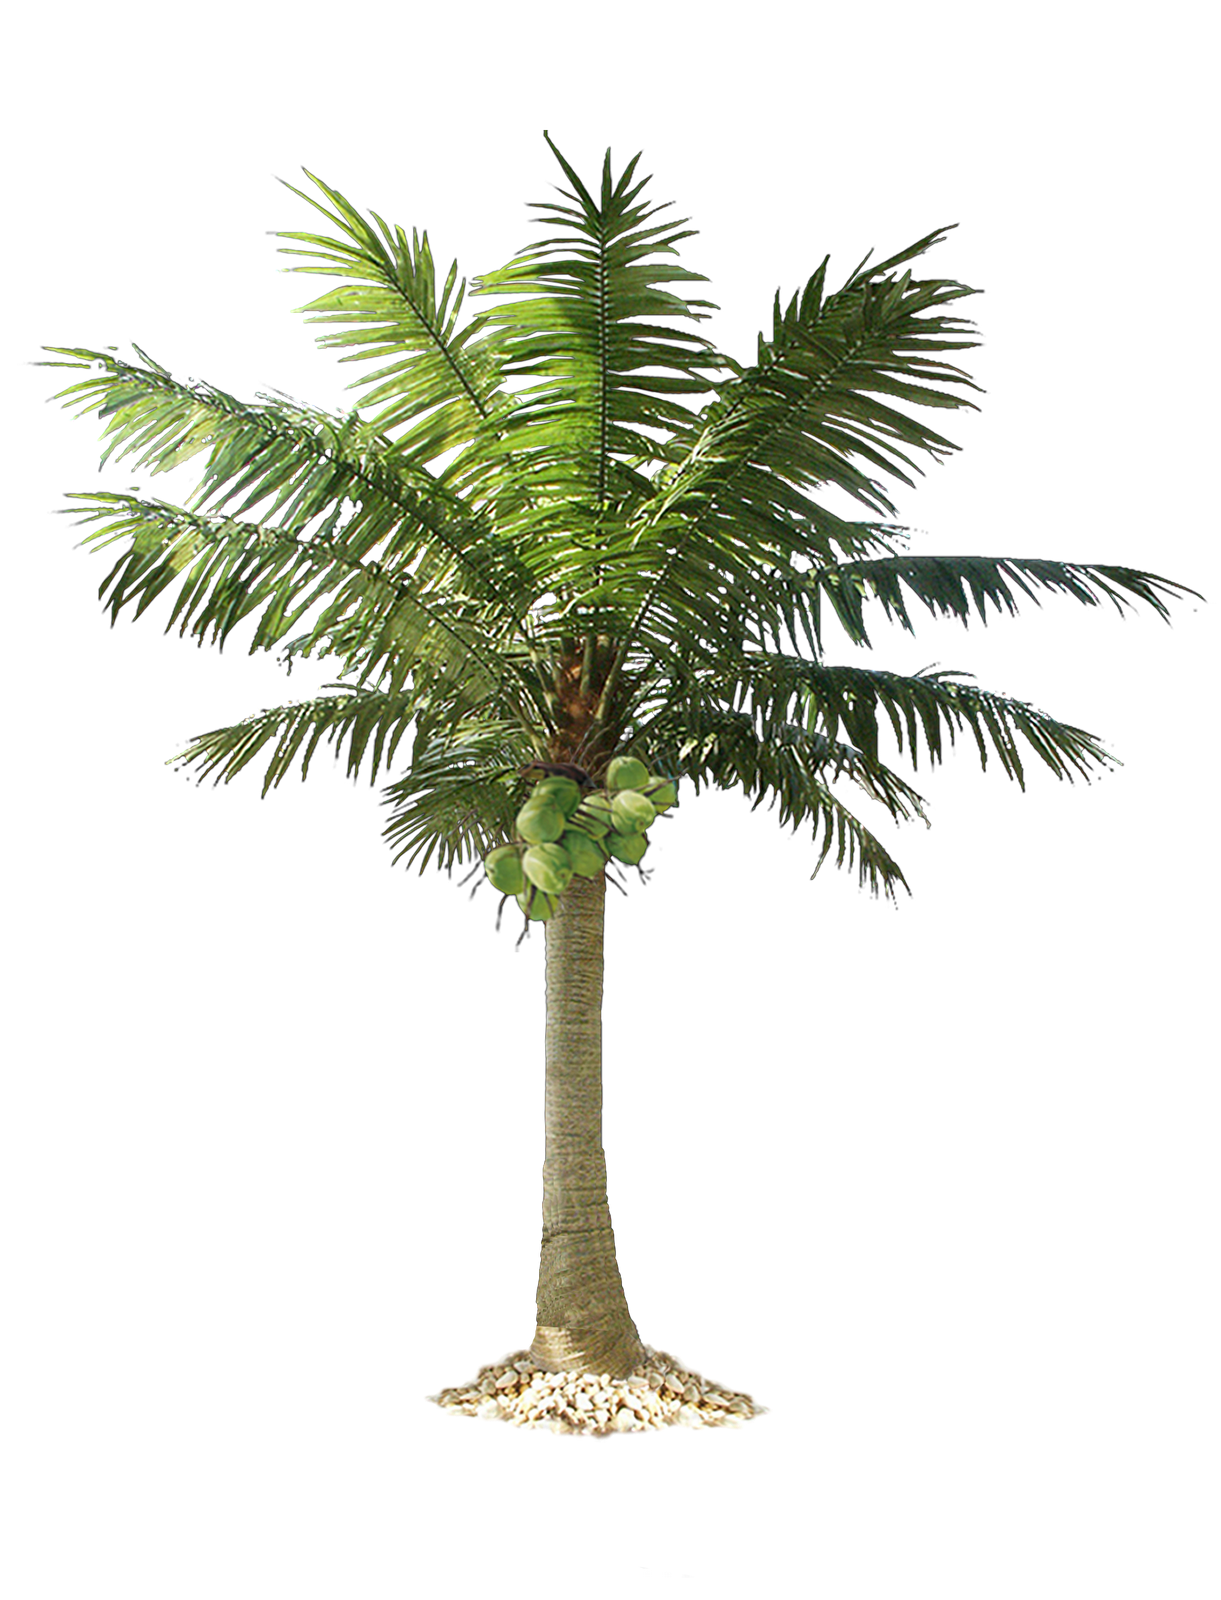 Free Download Palm Tree Png Images image #31891